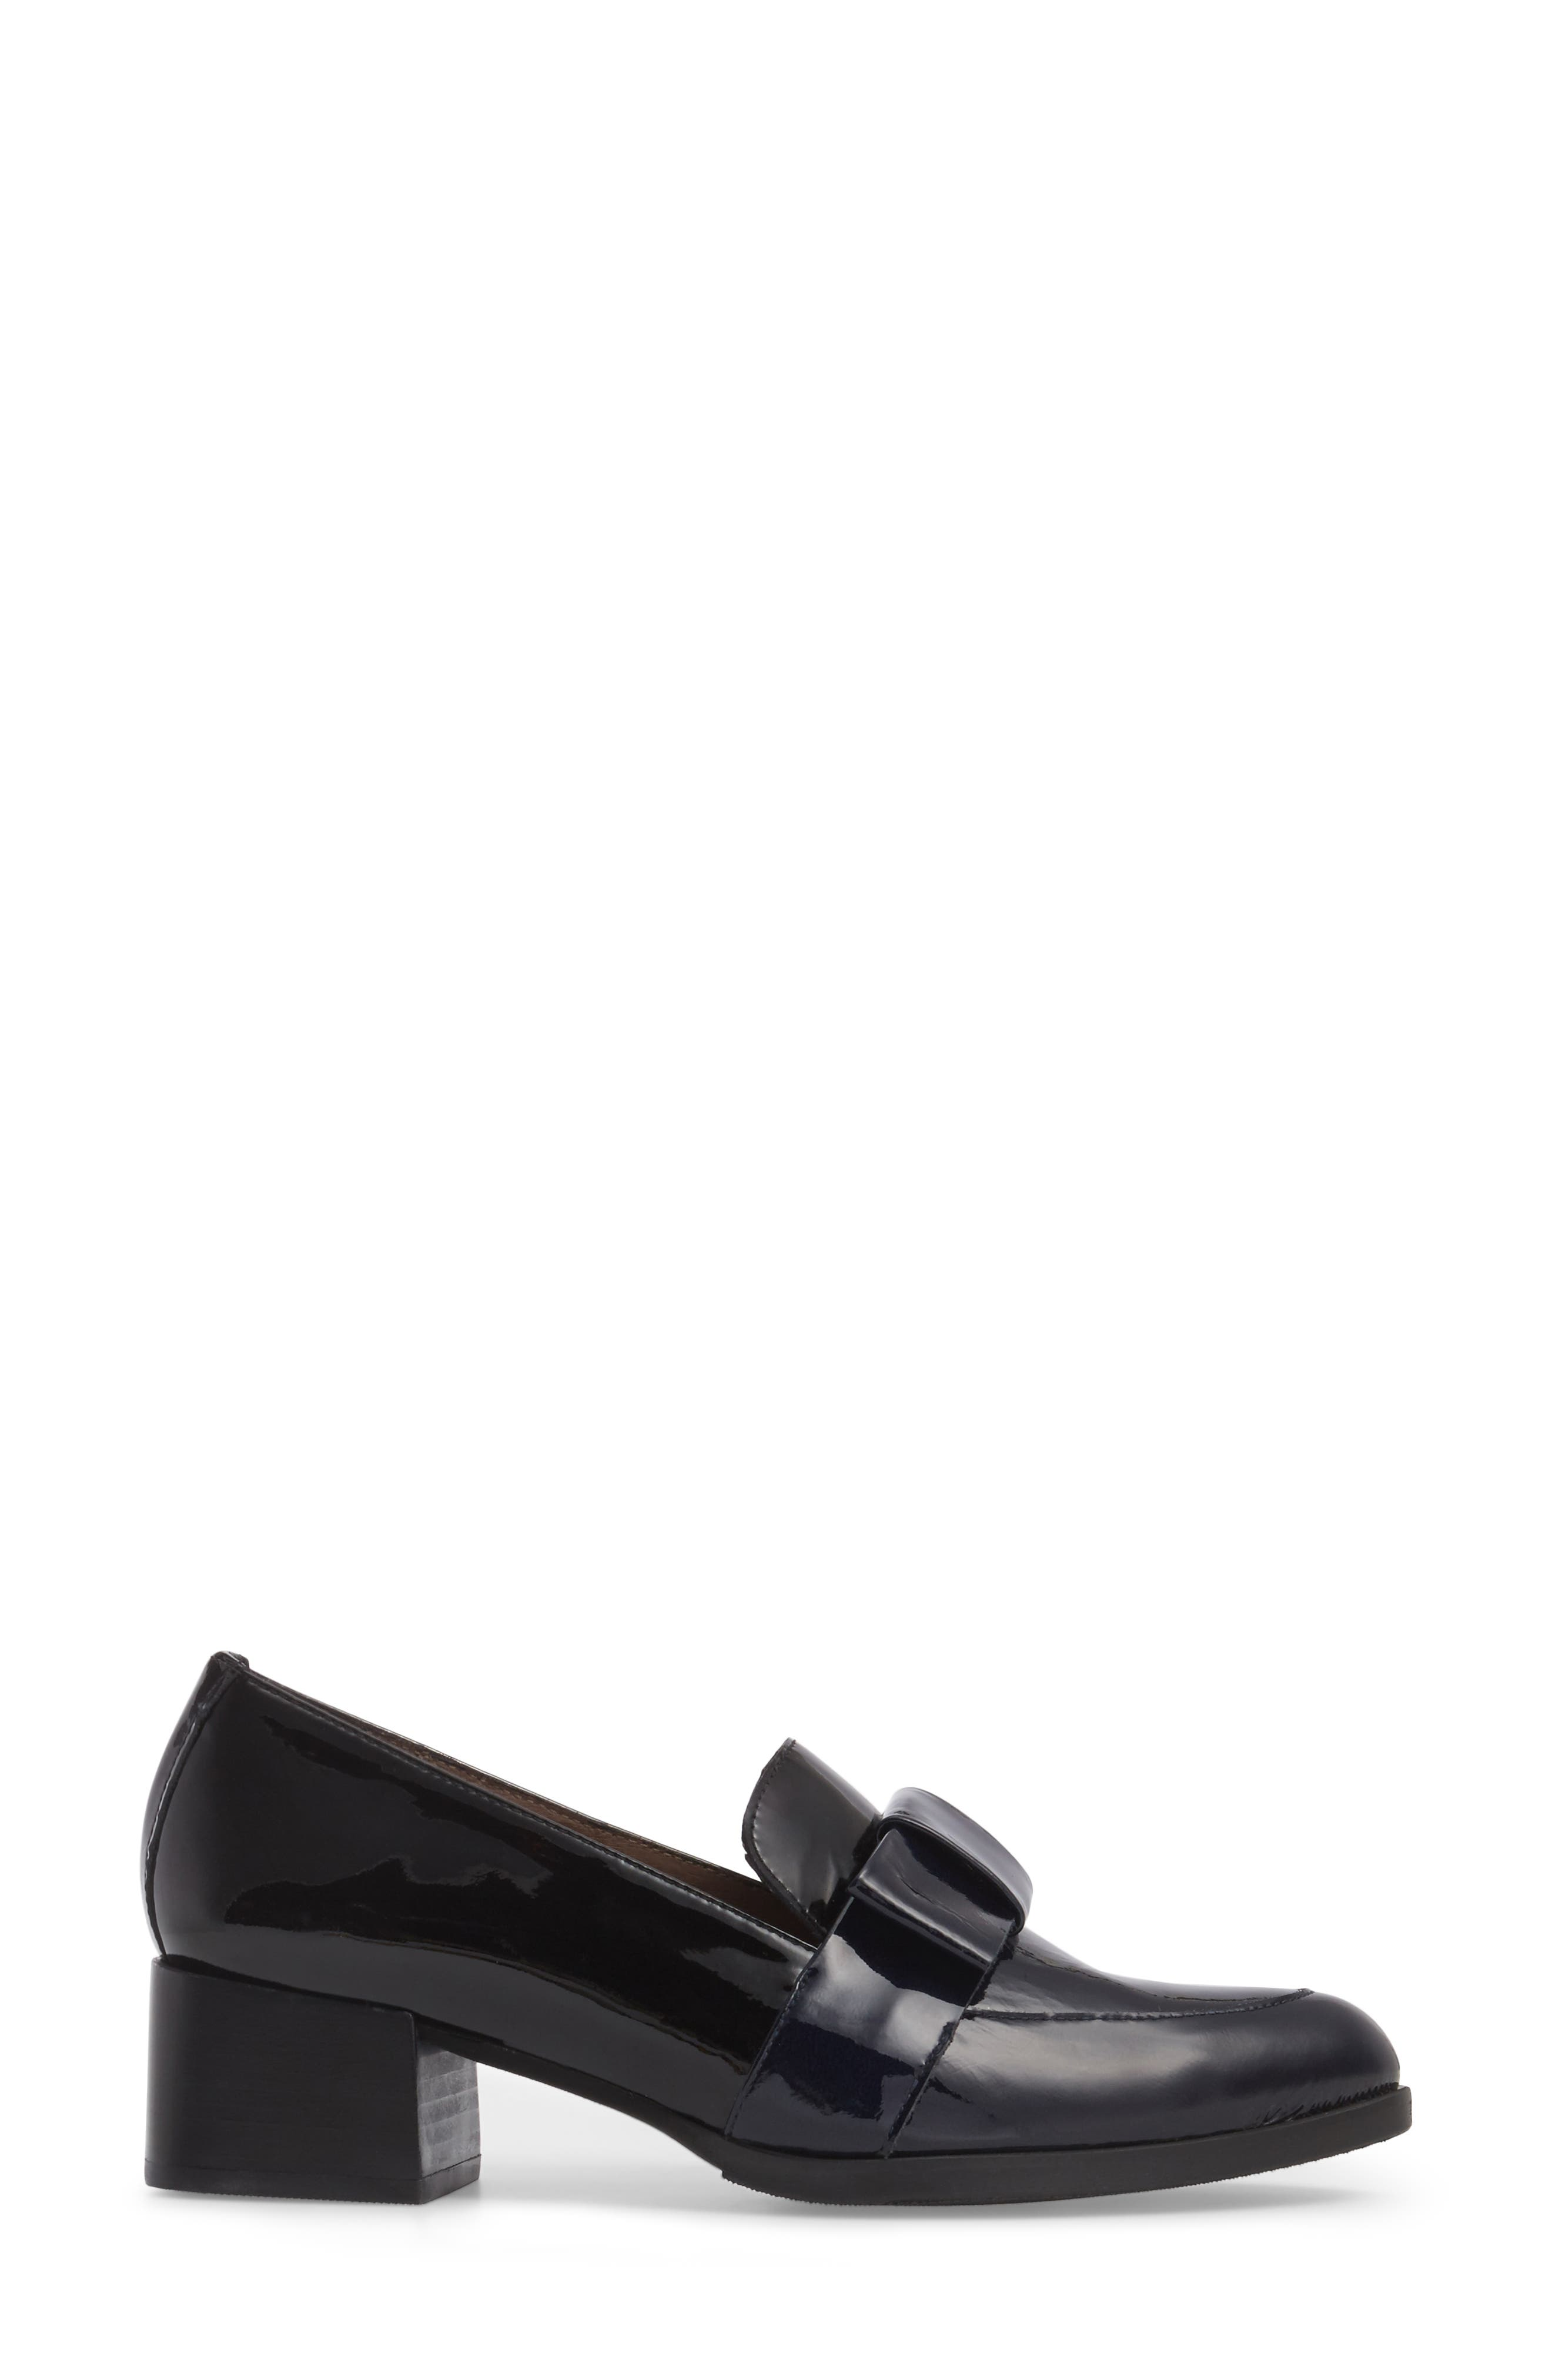 Block Heel Loafer Pump,                             Alternate thumbnail 3, color,                             NAVY/ BLACK PATENT LEATHER